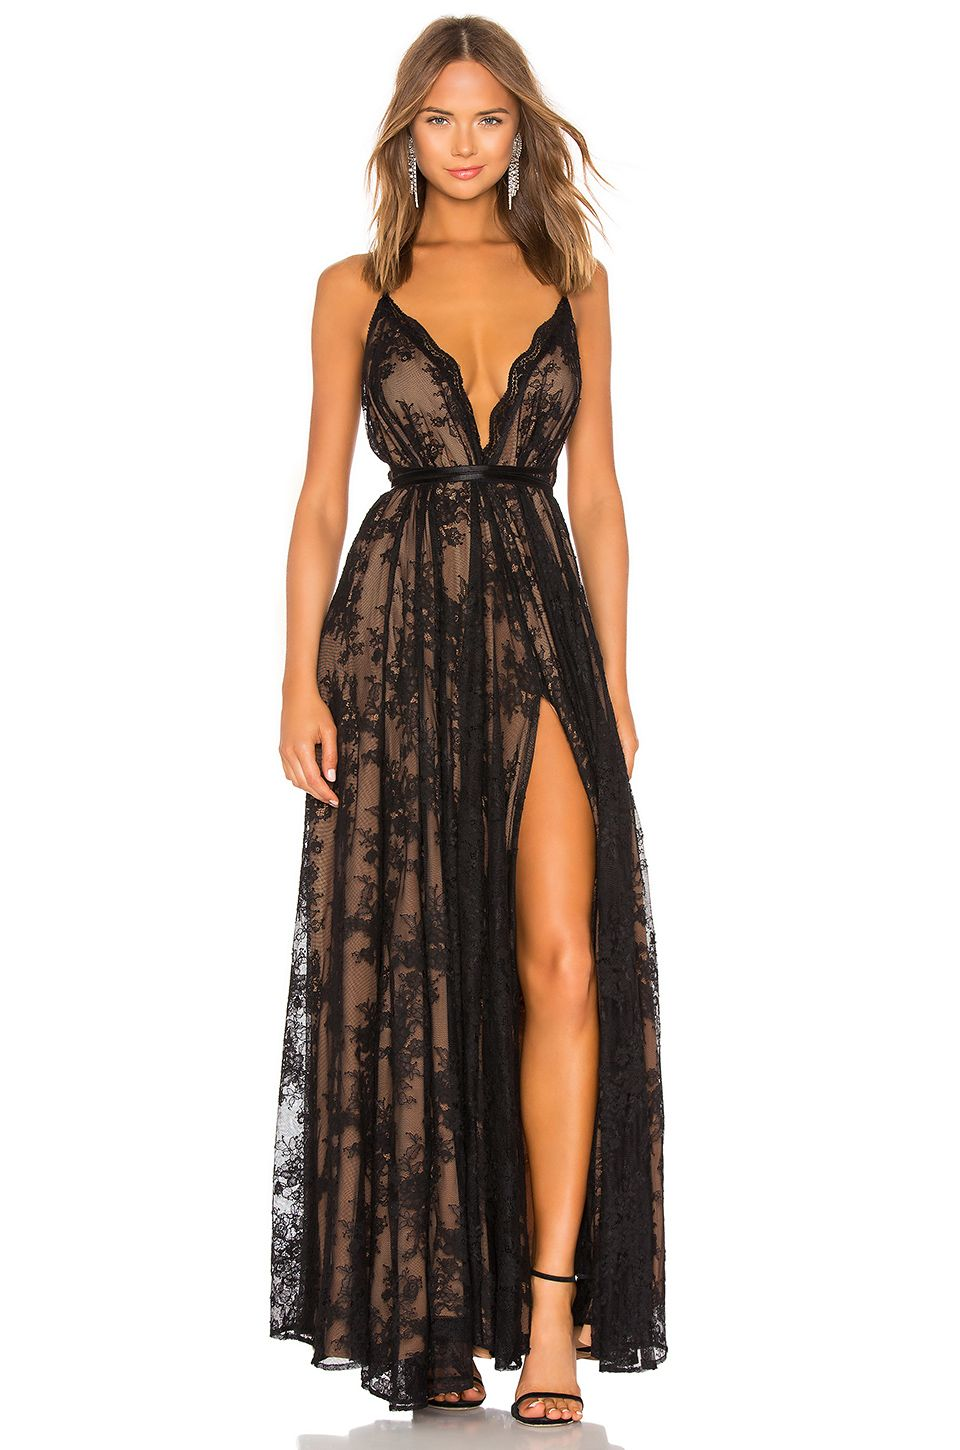 c18ecde3471a2 Michael Costello Paris Gown in Black